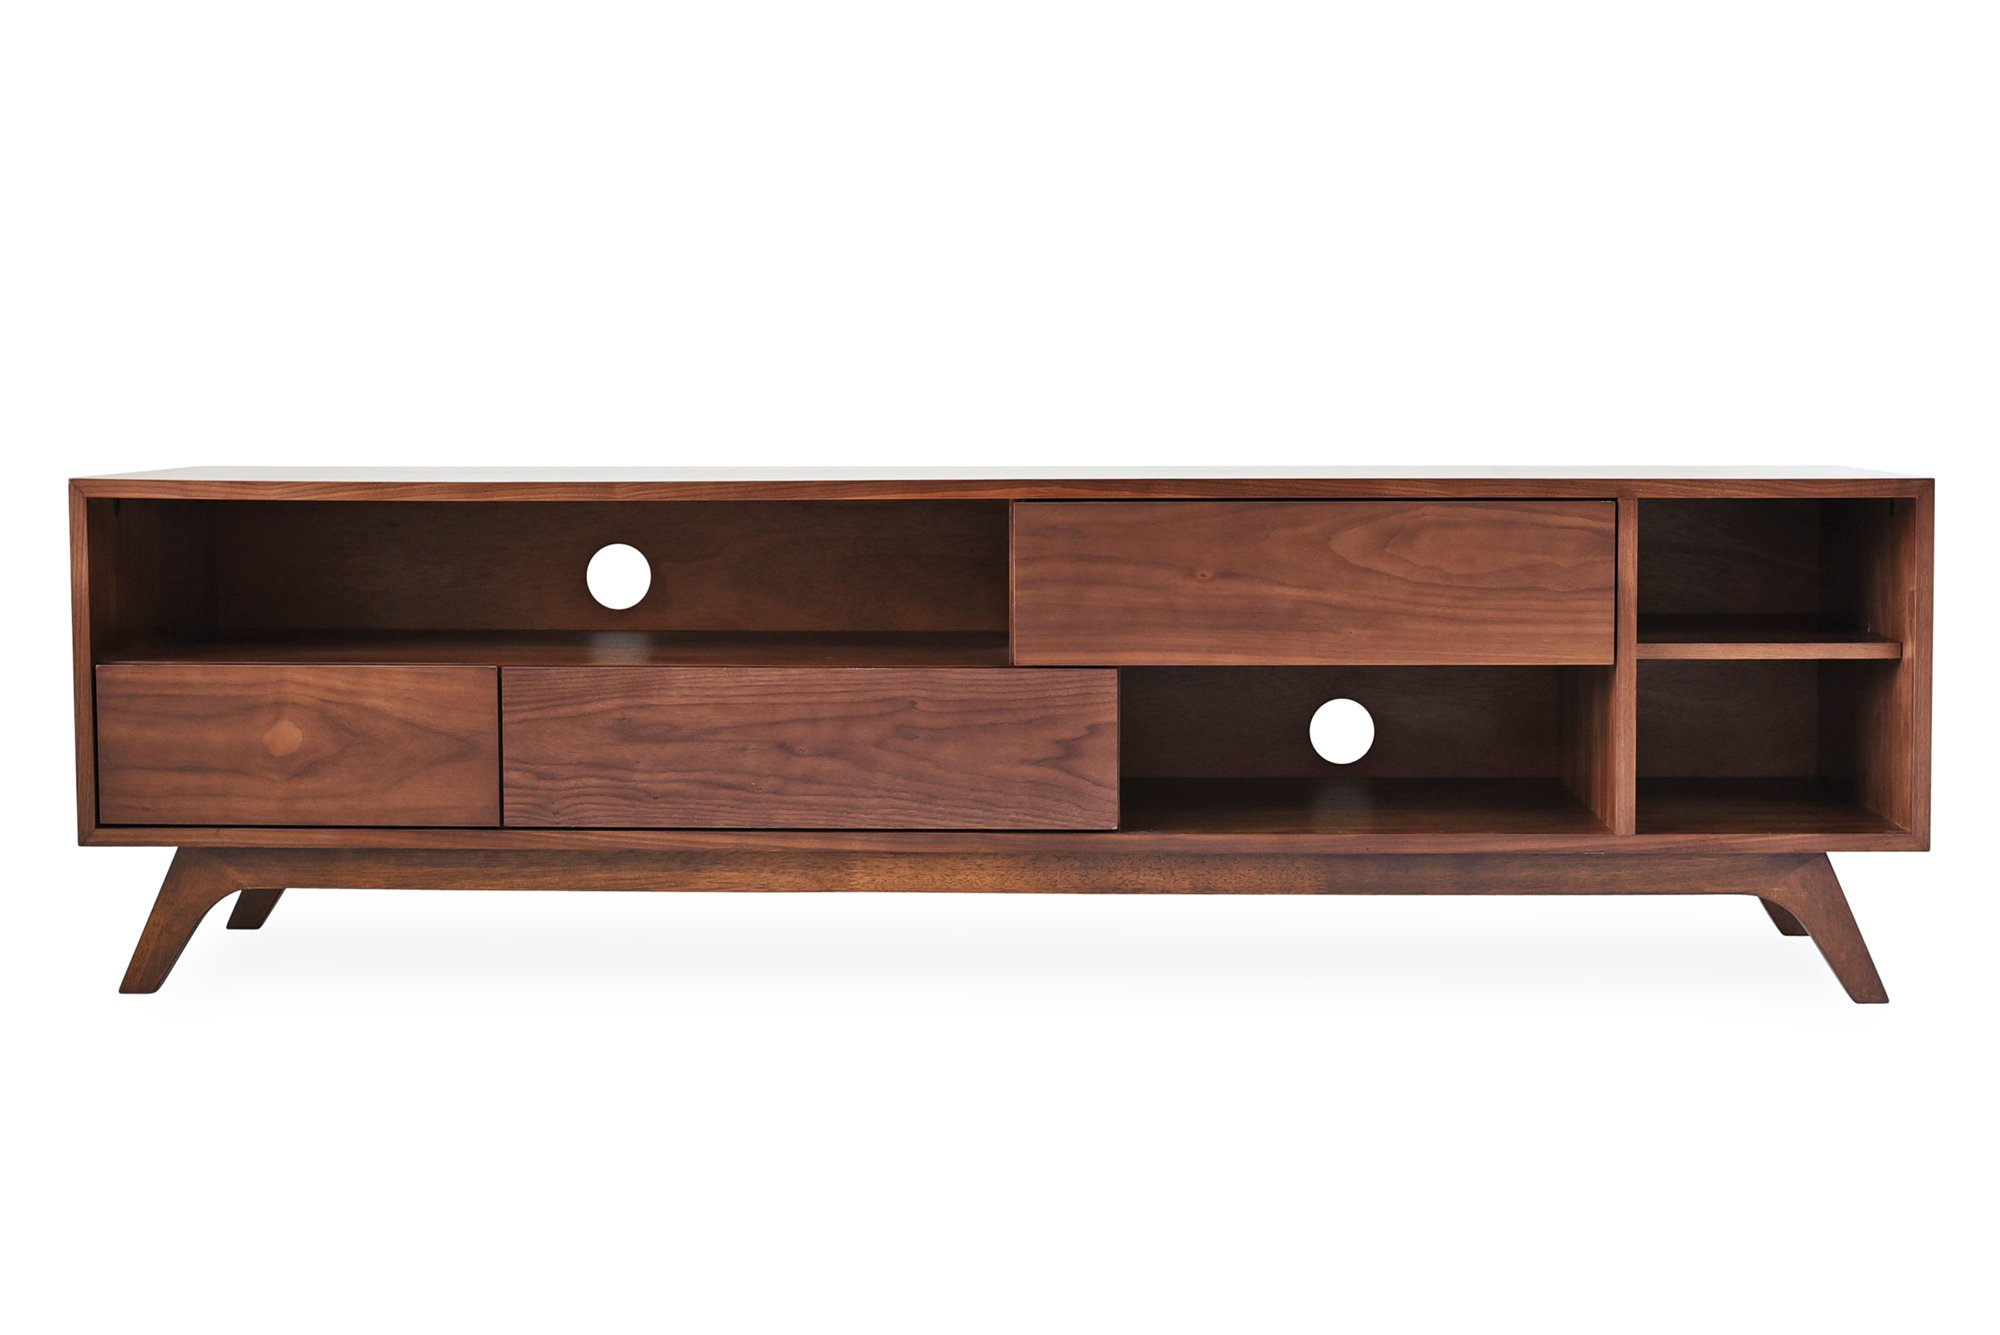 Edloe Finch PIPER Mid-Century Modern TV Stand, Cabinet with Storage, Walnut by Edloe Finch